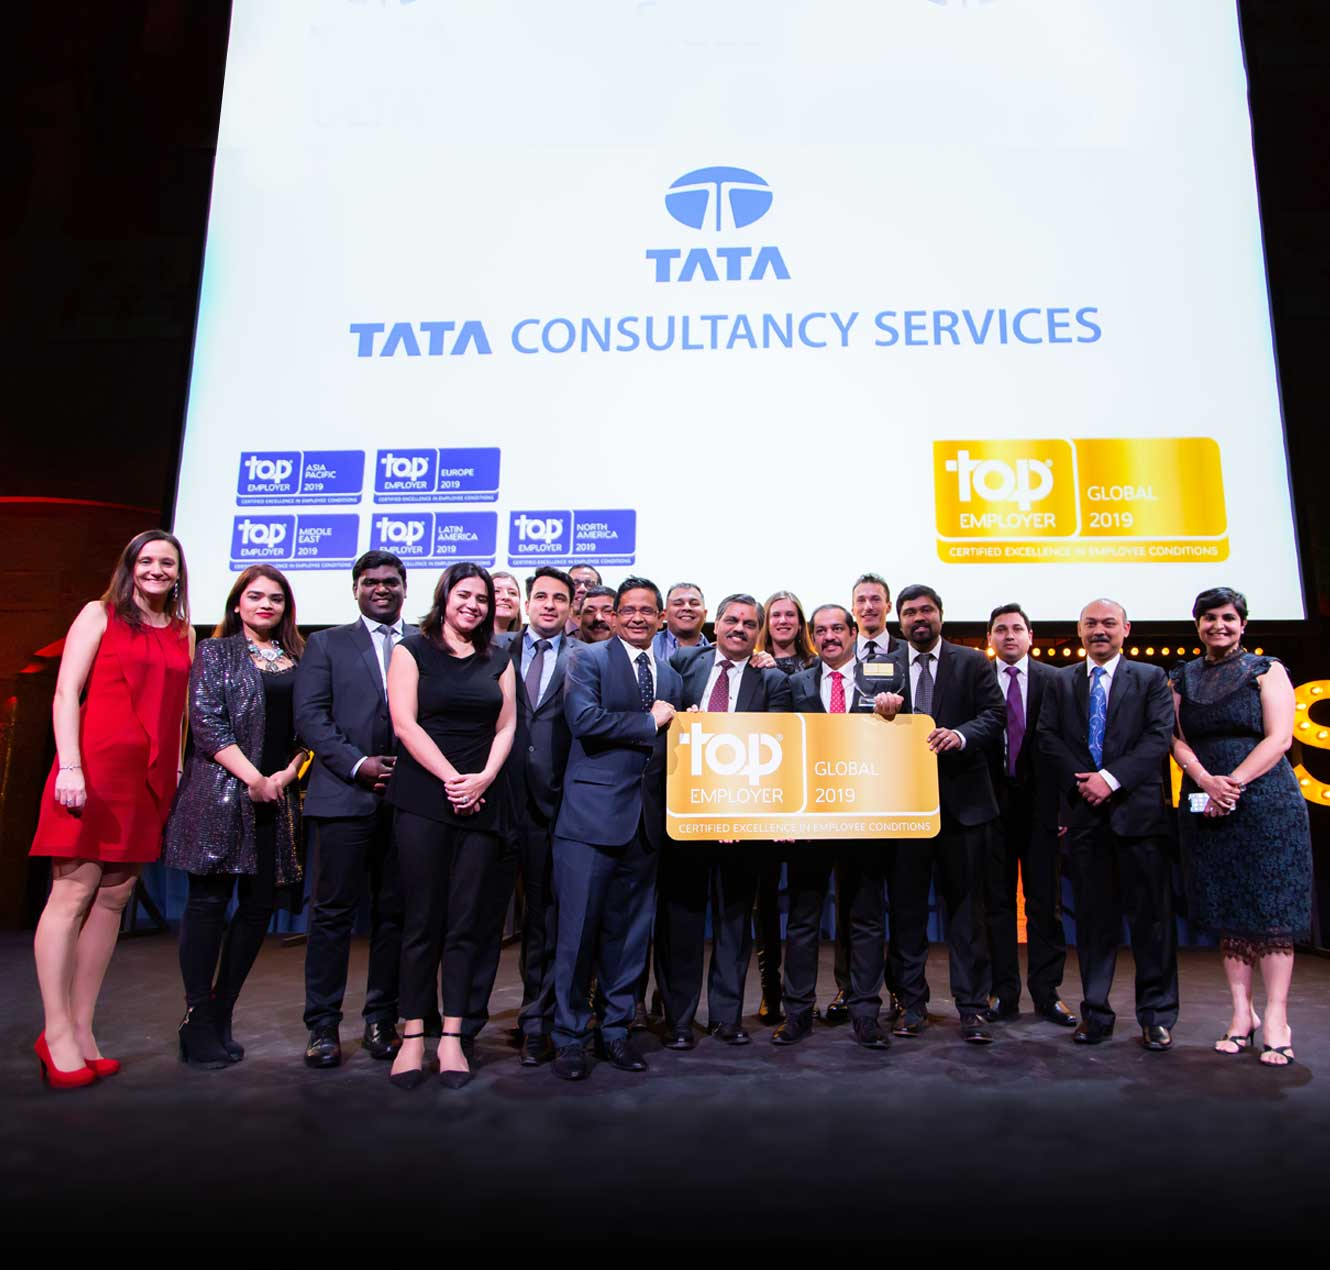 TCS the Only Top 10 IT Services Firm Recognized as a Global Top Employer